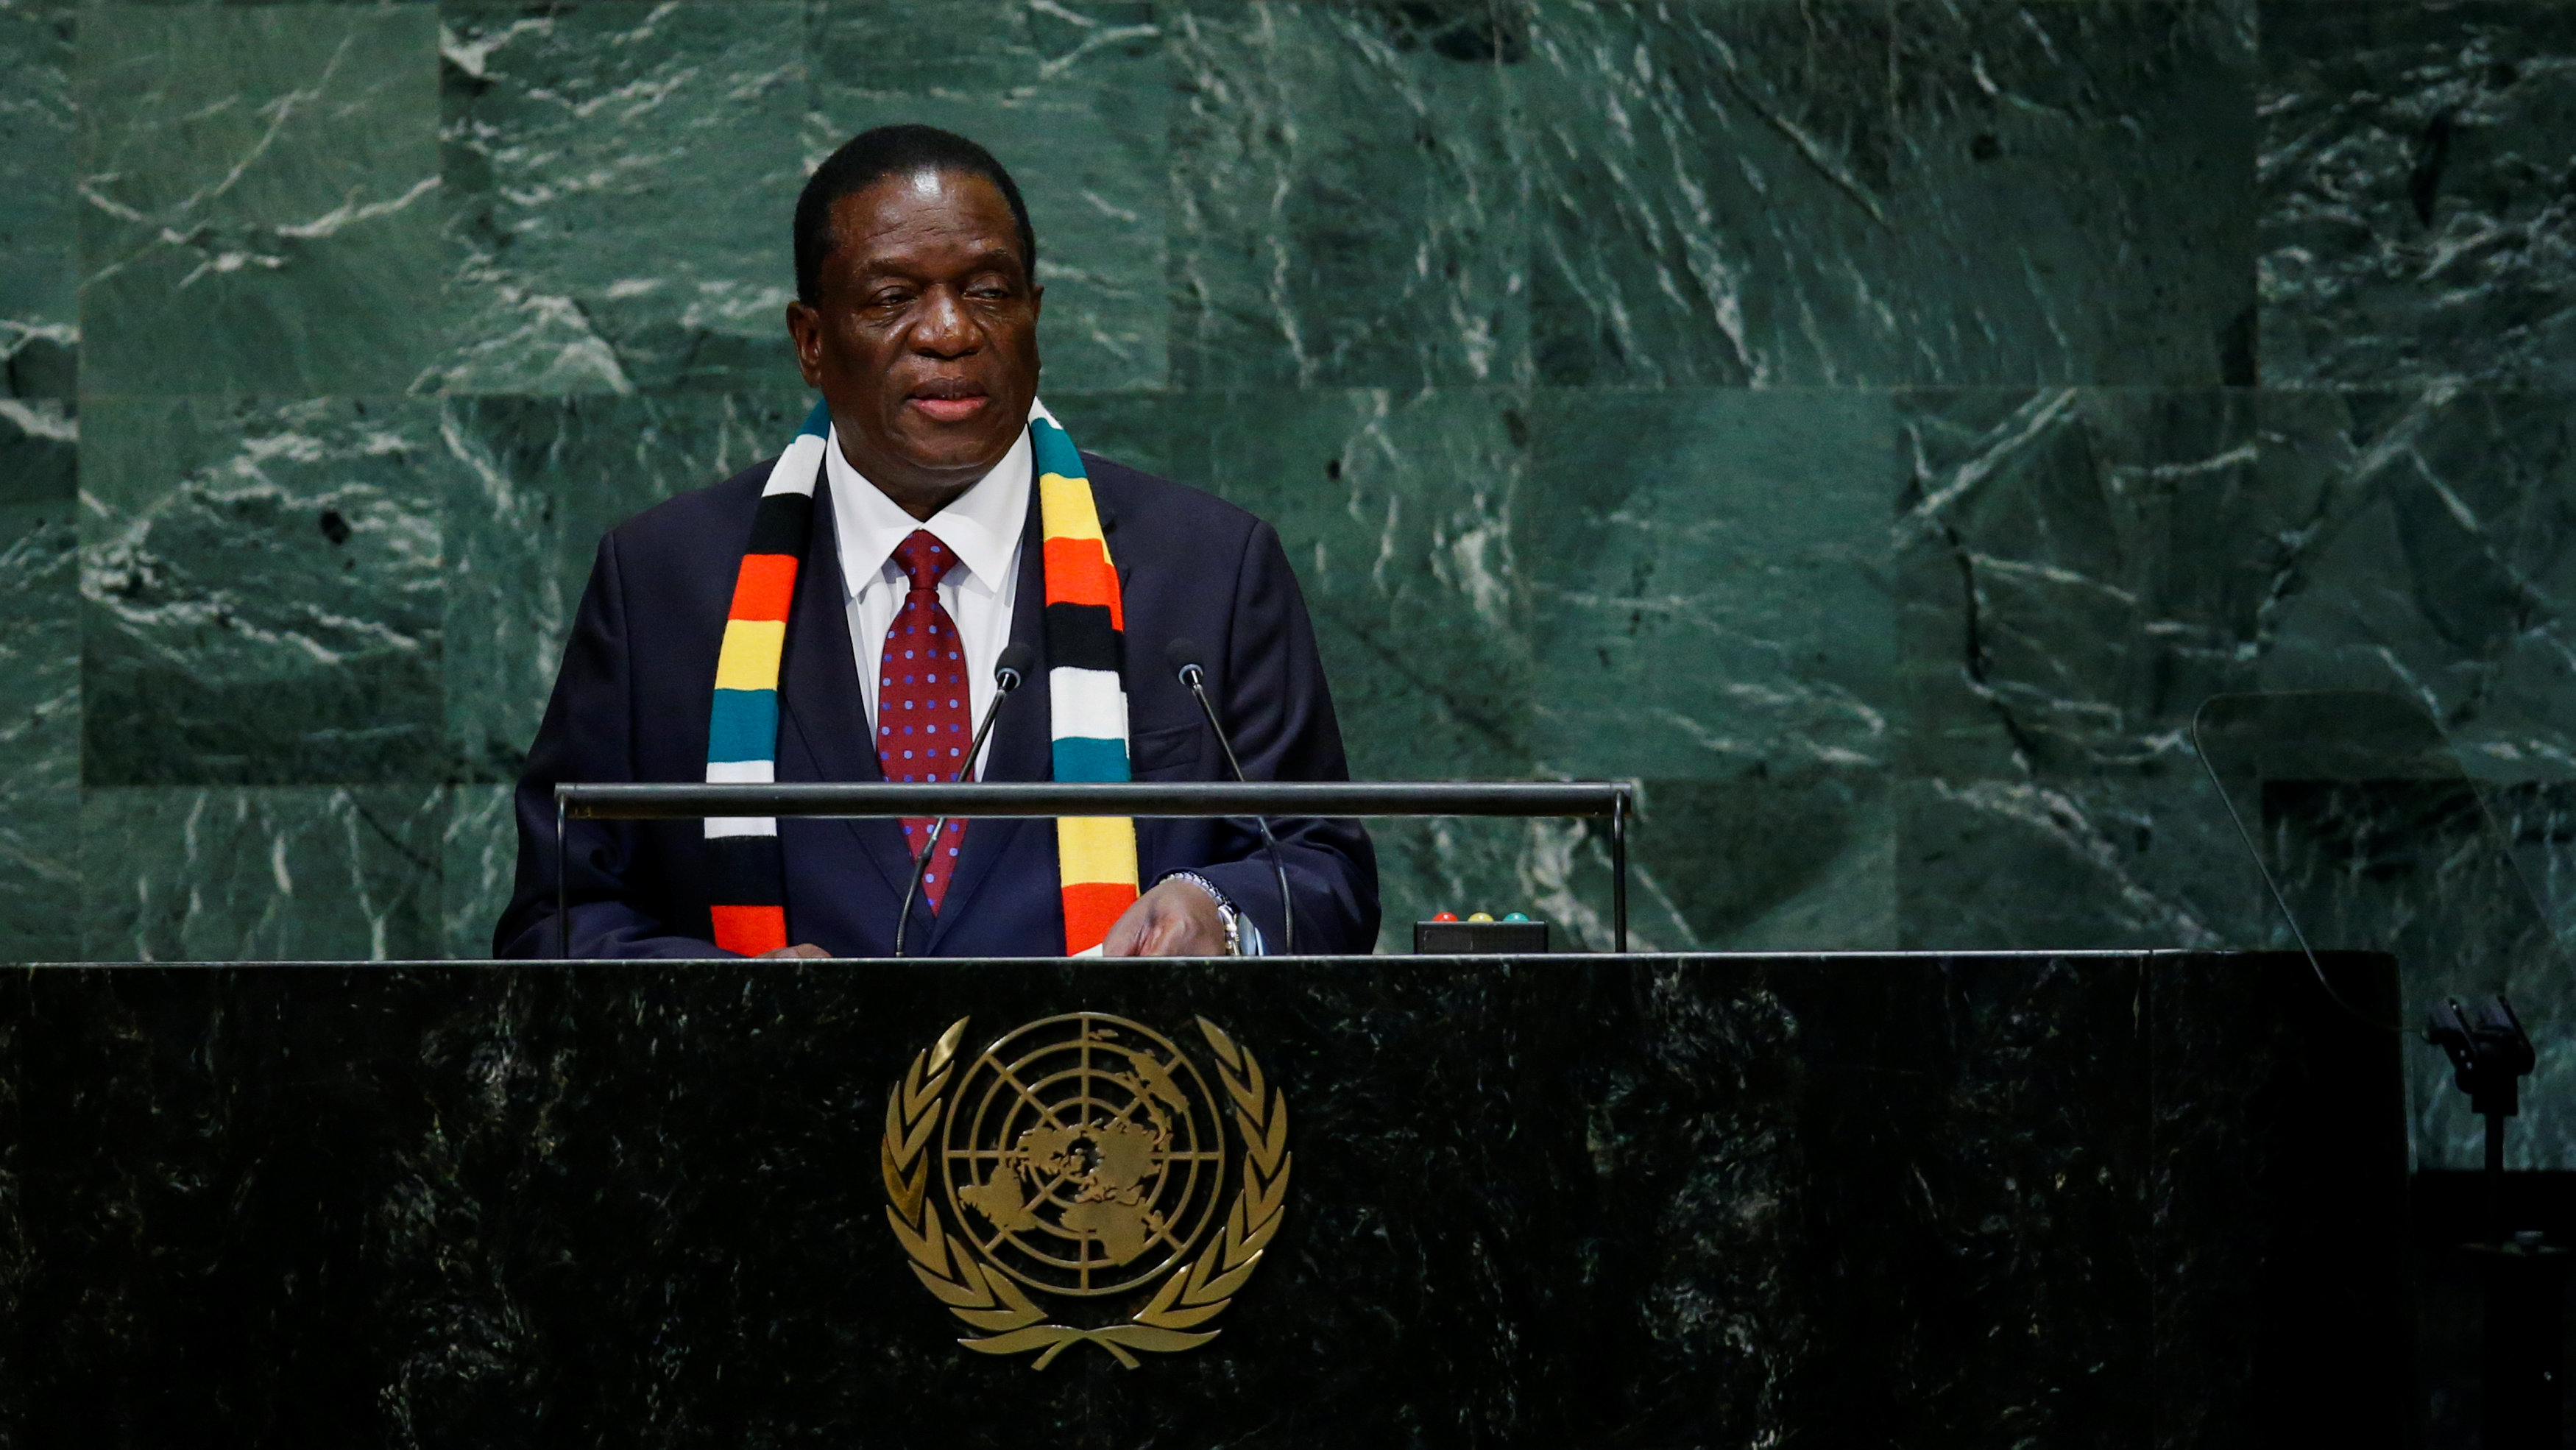 File: Zimbabwe's President Emmerson Mnangagwa addresses the 73rd session of the United Nations General Assembly at U.N. headquarters in New York, U.S., September 26, 2018.